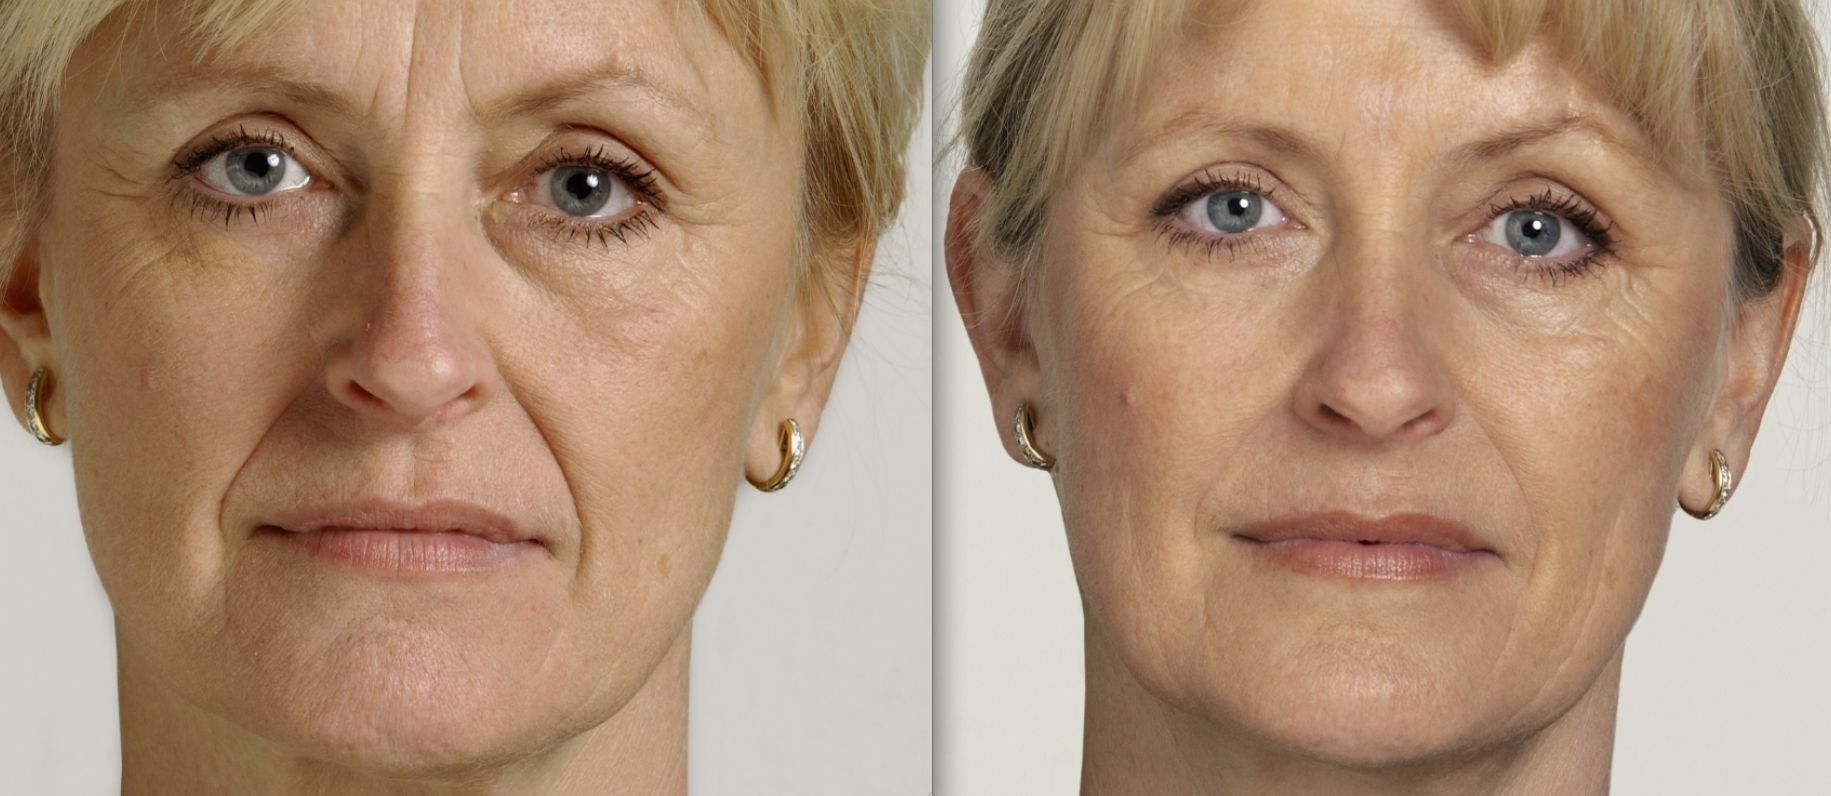 How You Can Acquire A NonInvasive Facelift Using Effortless Face